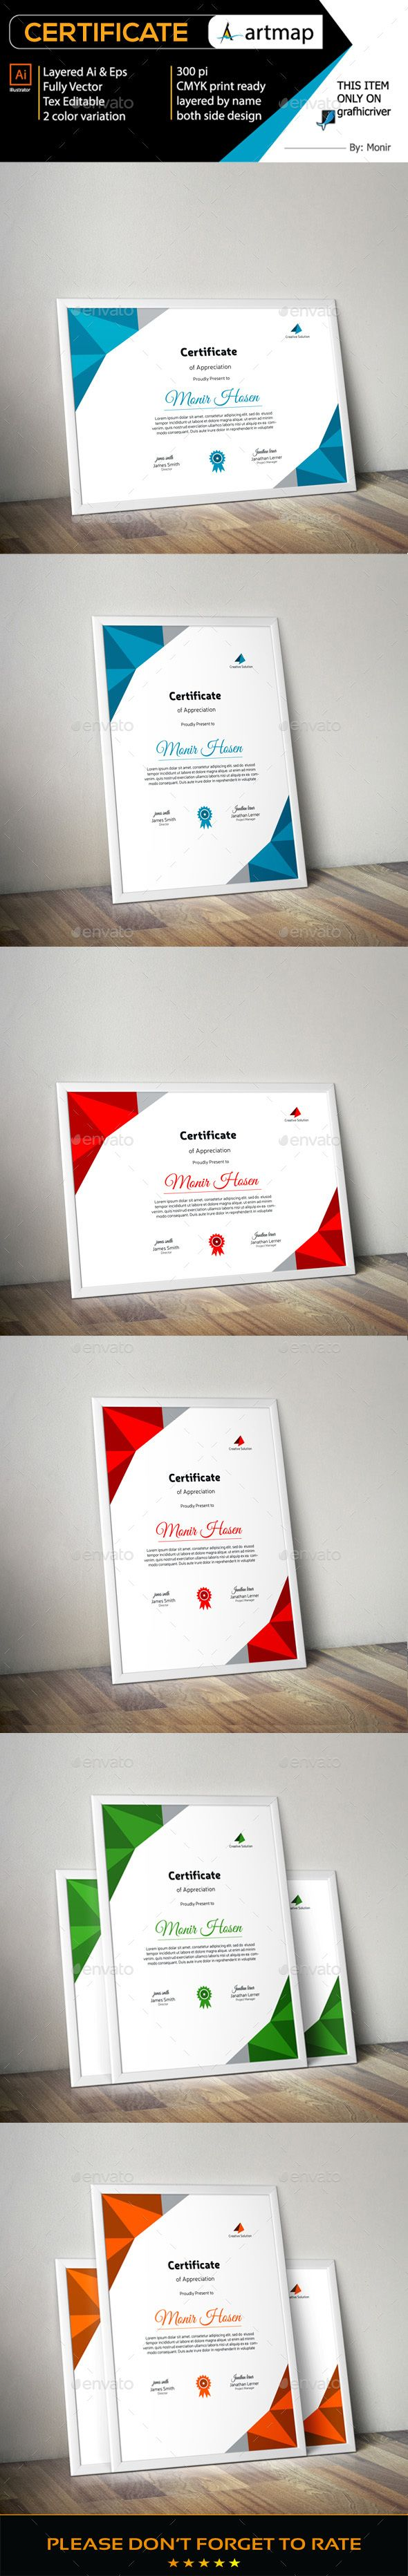 Best 25 certificate design template ideas on pinterest corporate creative certificate design template certificates stationery template vector eps ai illustrator download xflitez Image collections